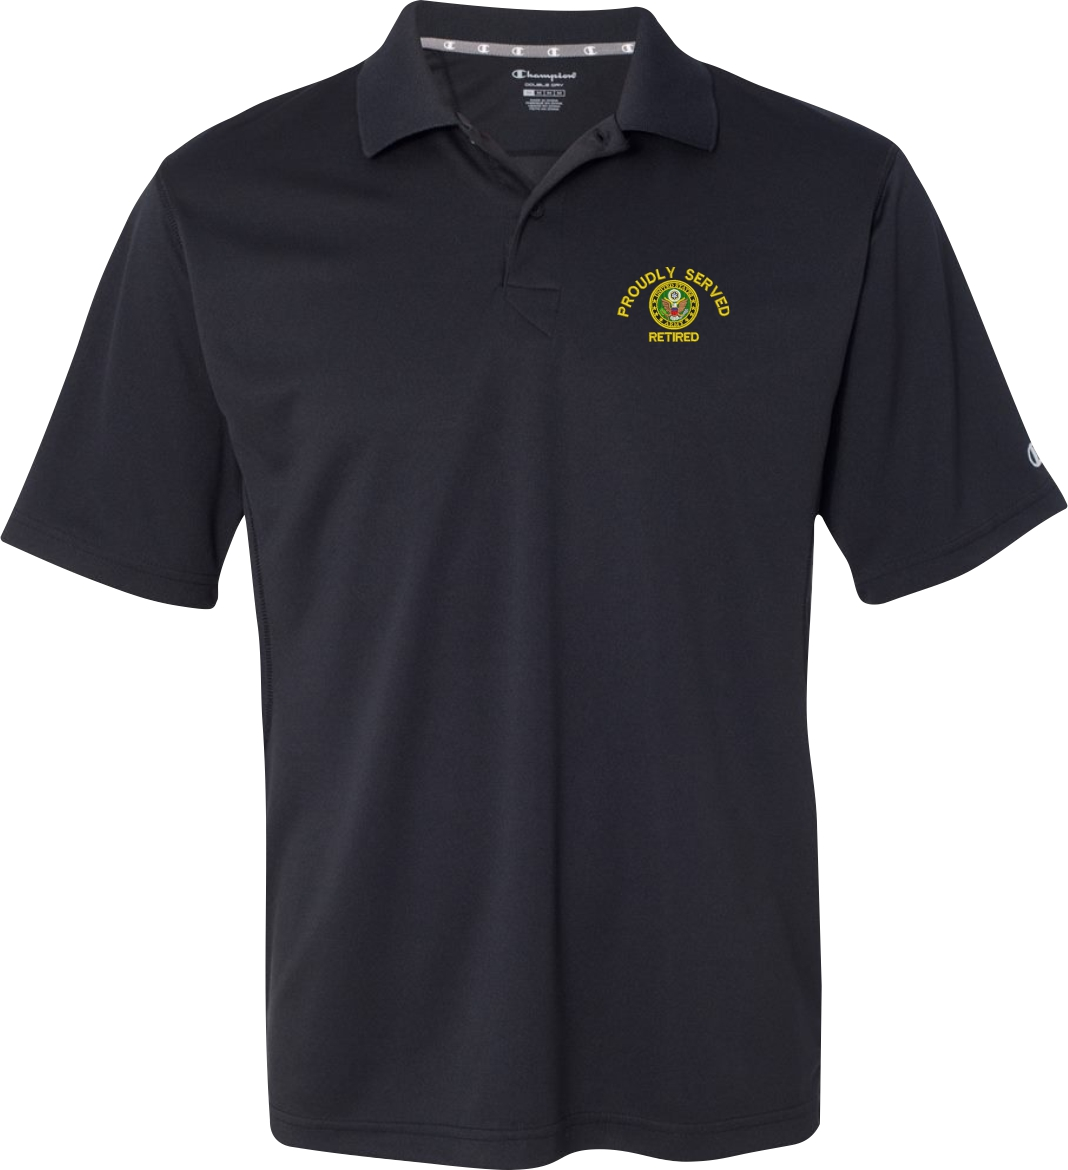 U s army custom embroidered moisture wicking polo shirts for Embroidered police polo shirts